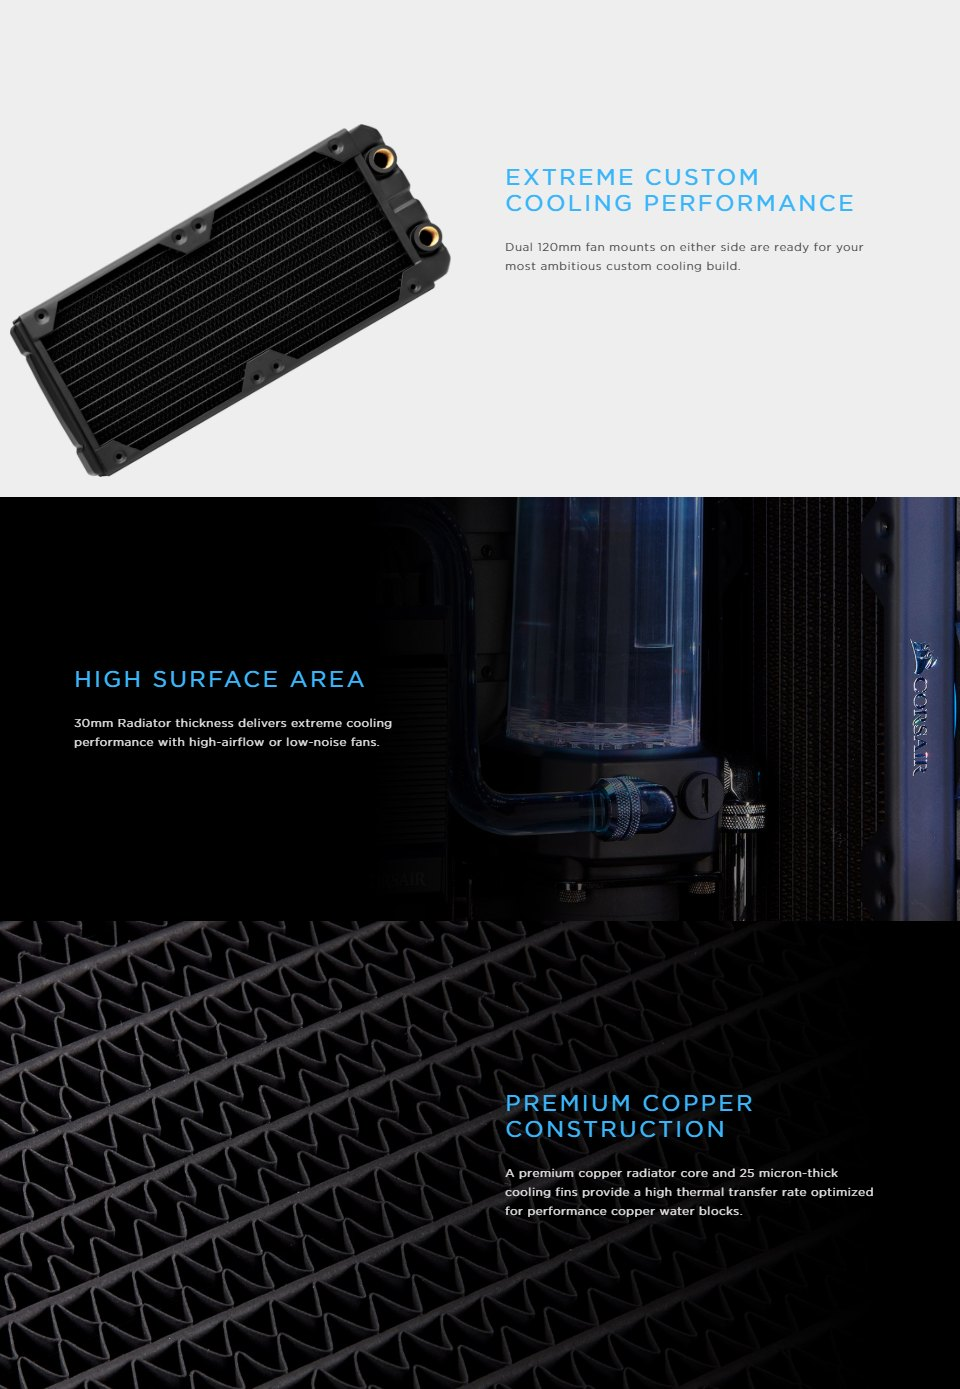 Corsair Hydro X Series XR5 240mm Water Cooling Radiator features